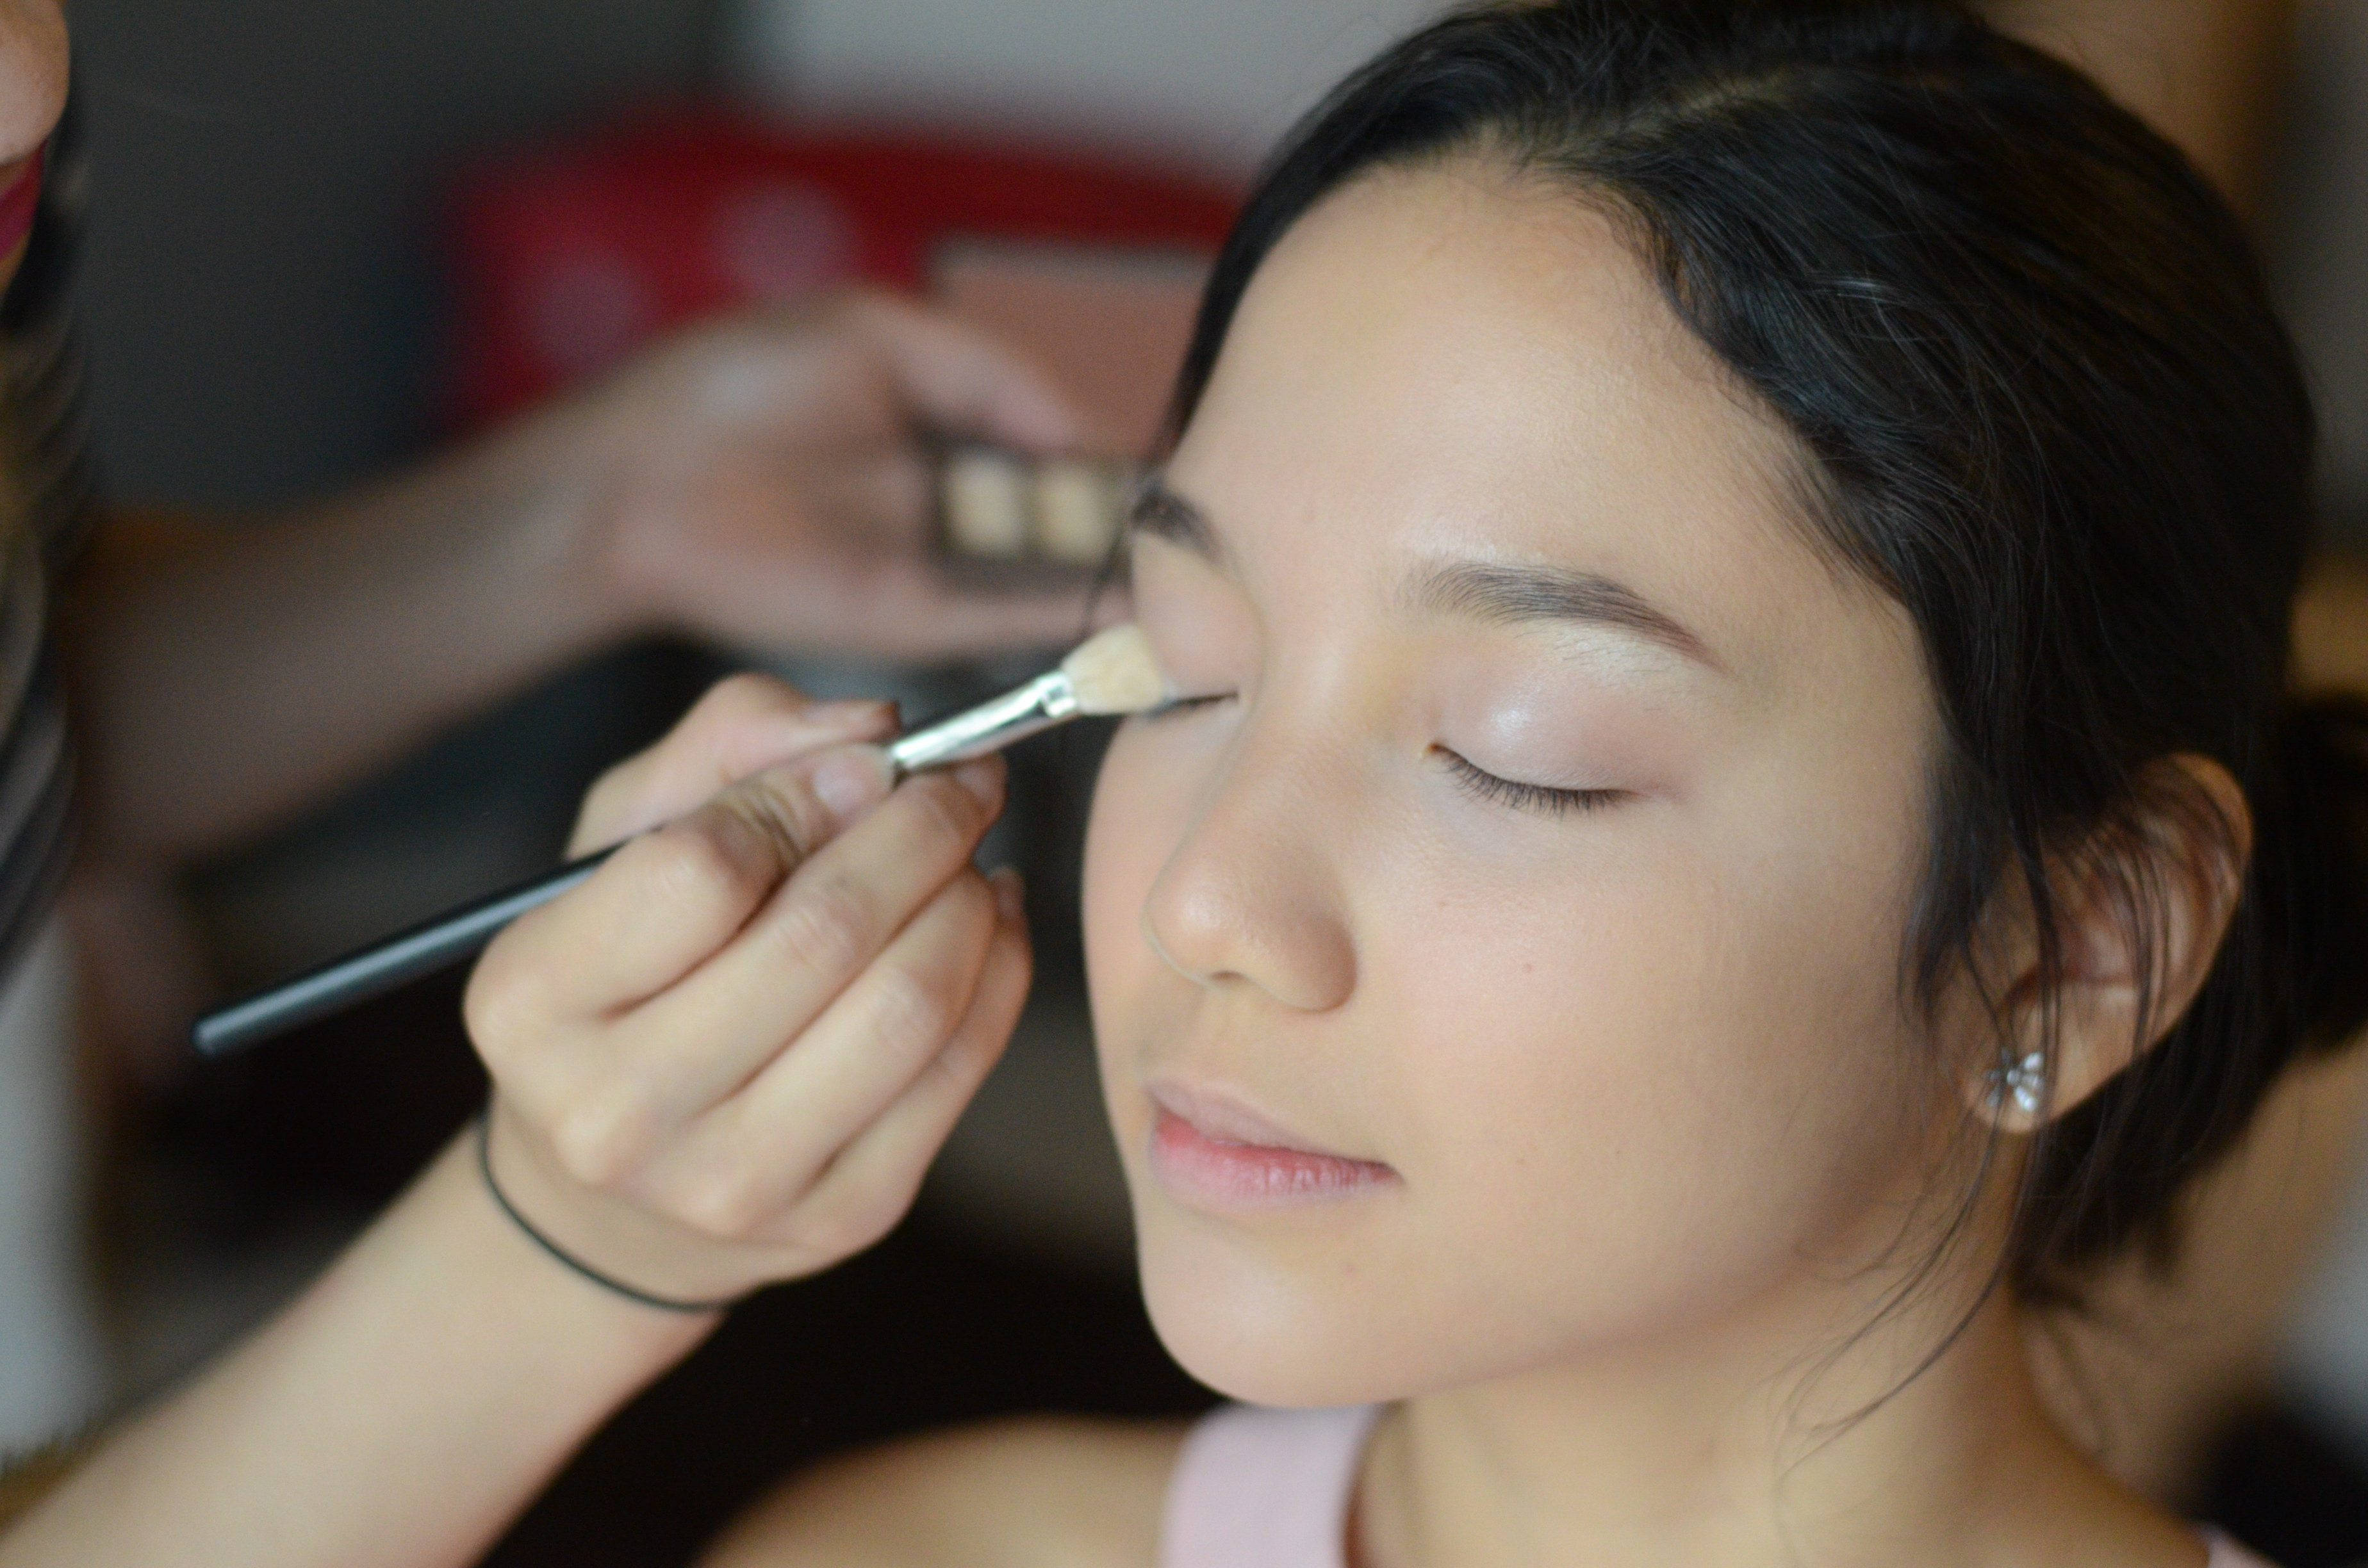 Makeup For Work: How To Get Ready In 5 Minutes